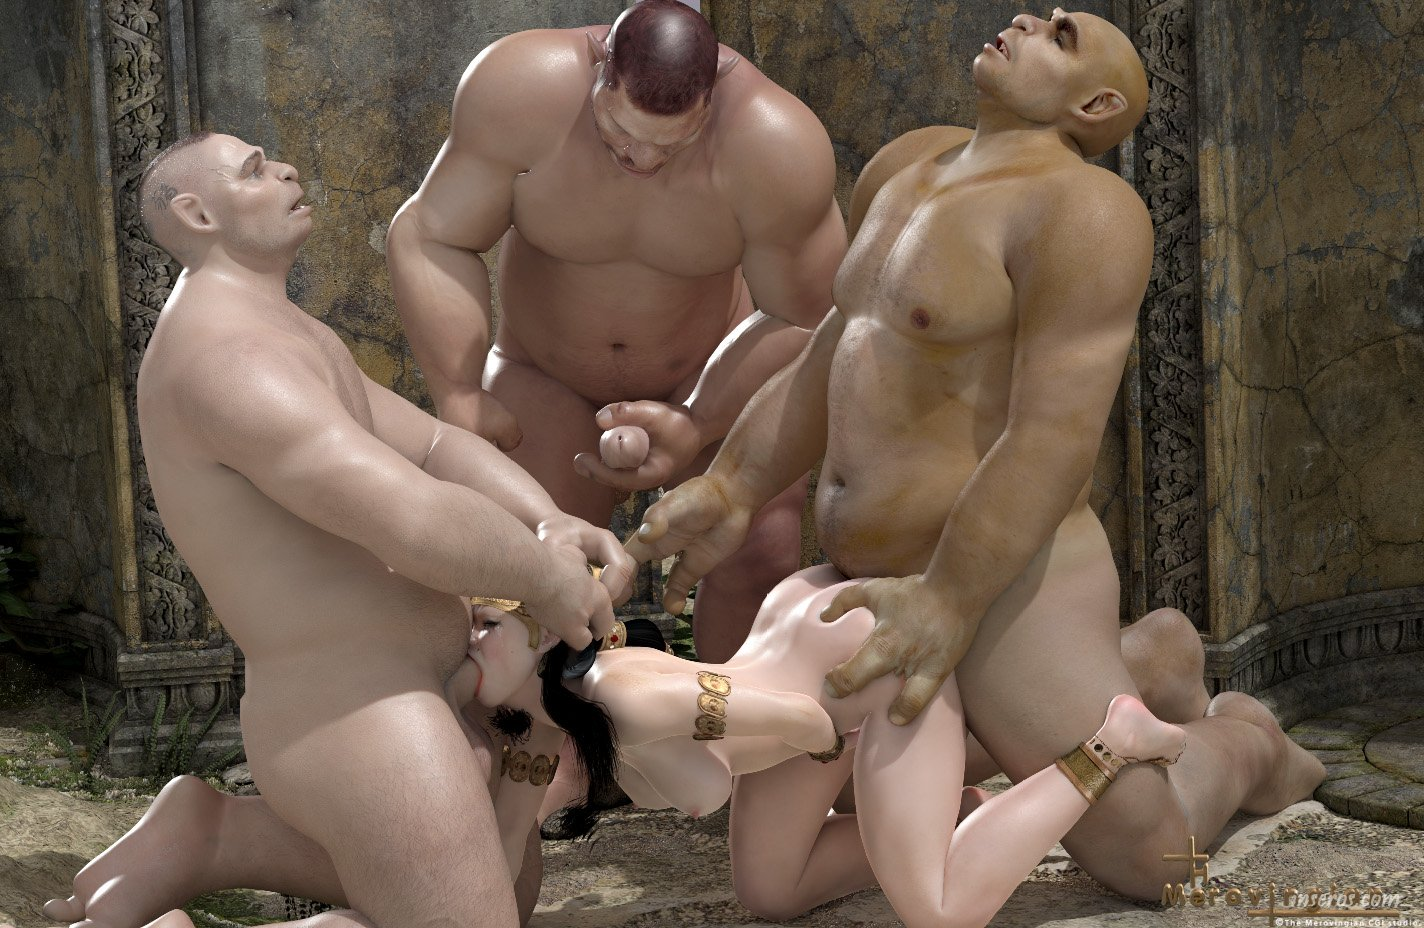 Gangbang by orcs sexy tube